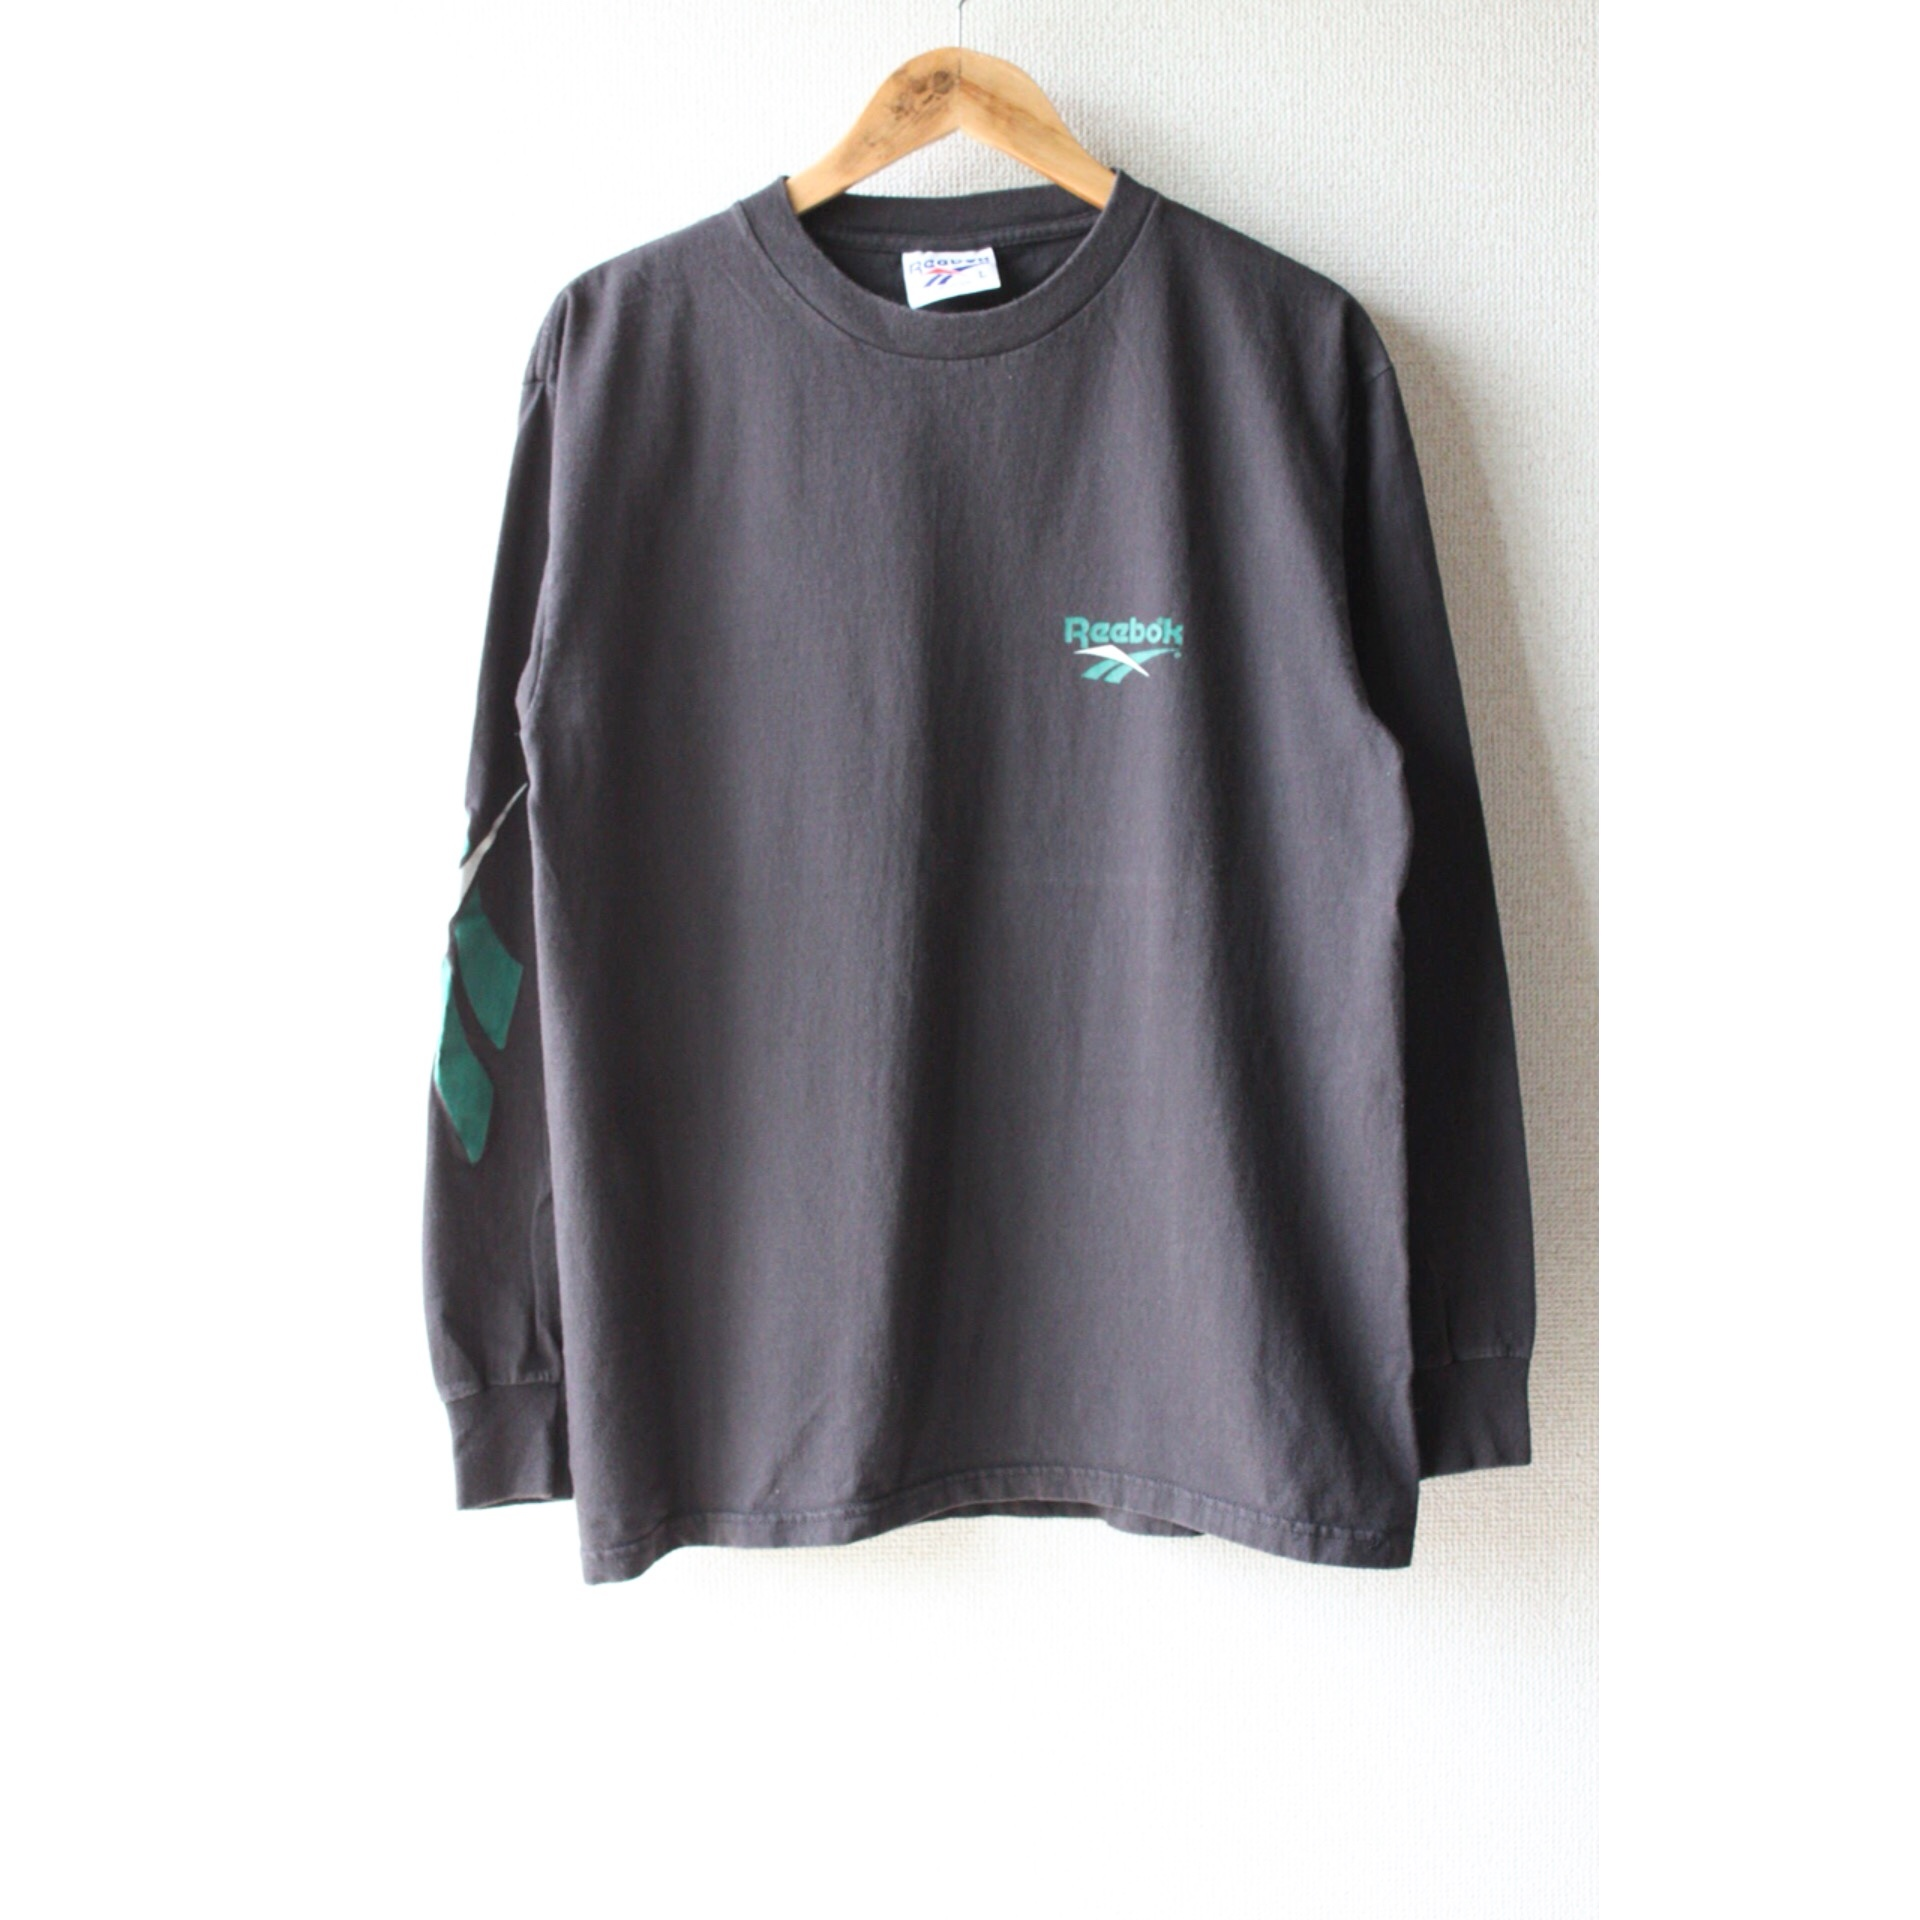 90s Reebok long sleeve shirt